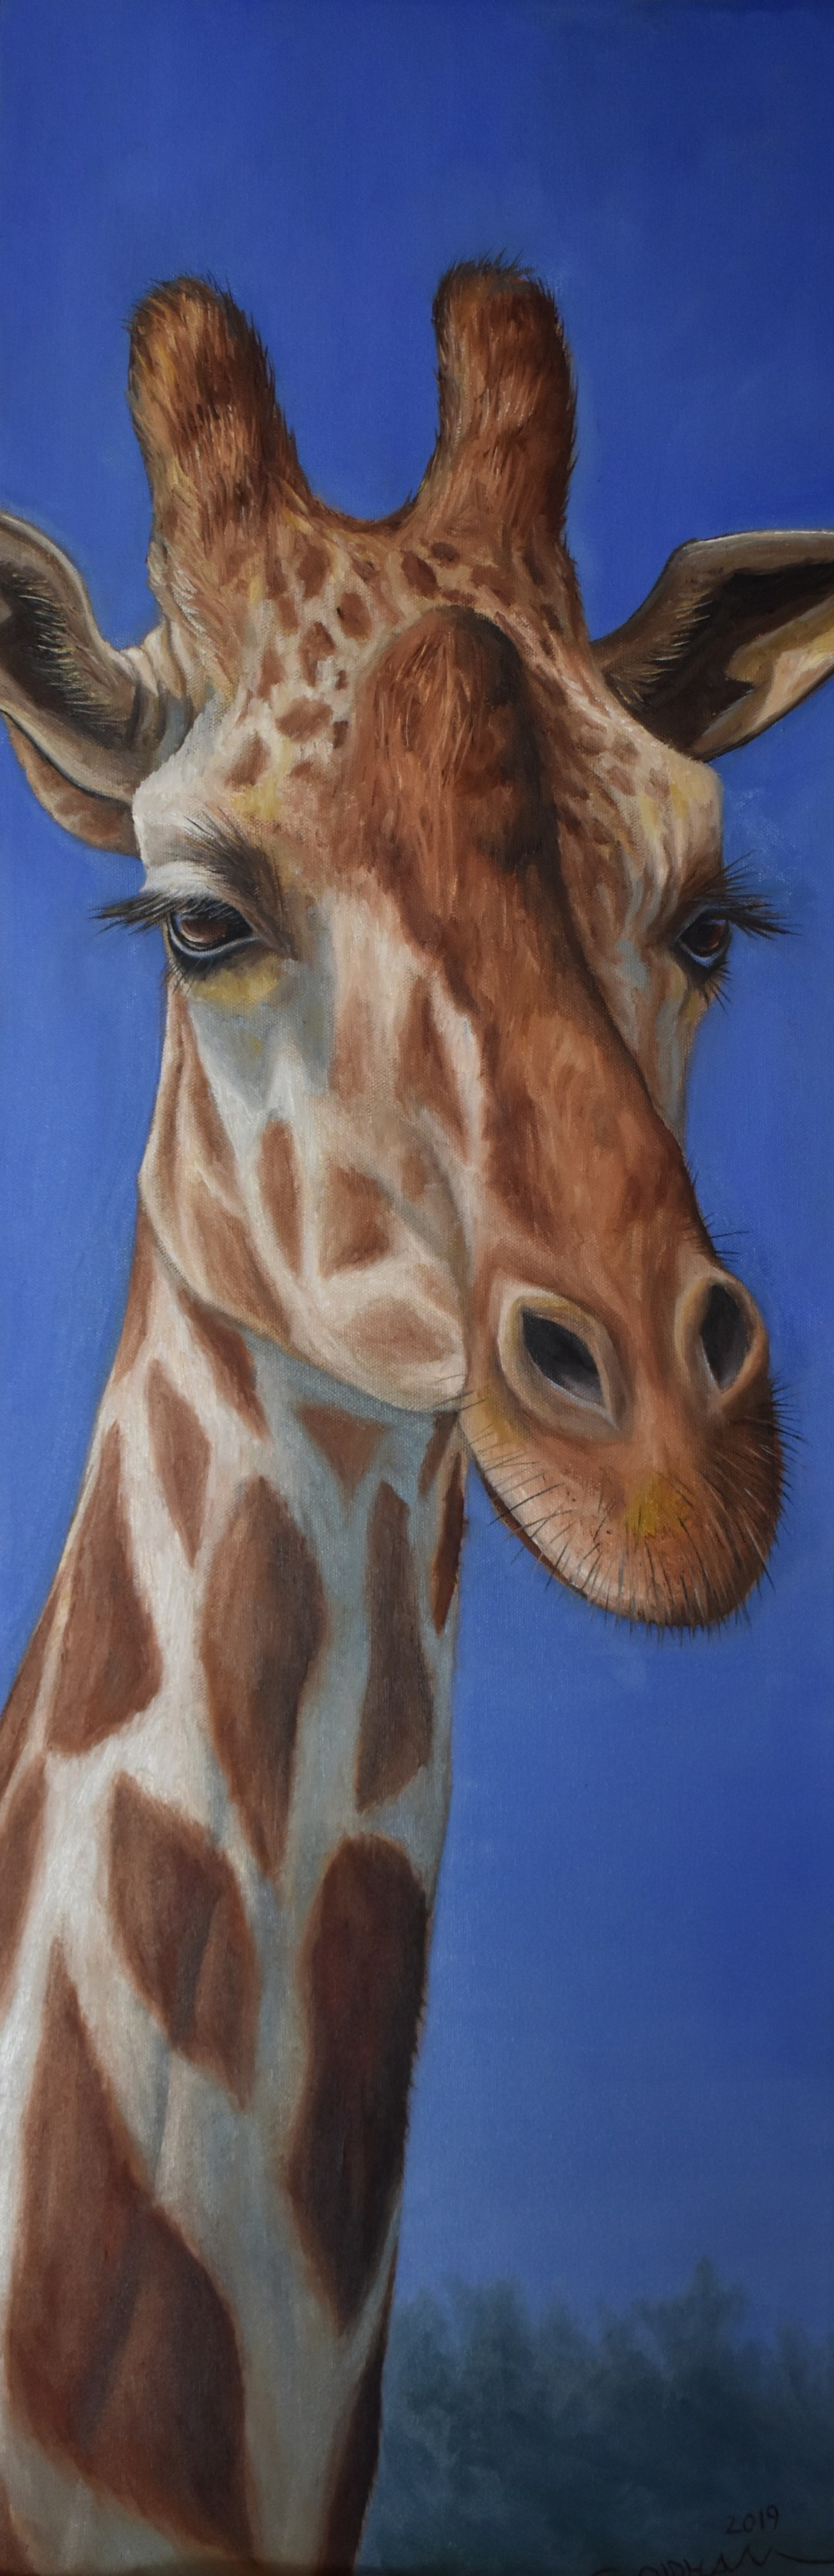 Oil painting of giraffe portrait by Cody Oldham